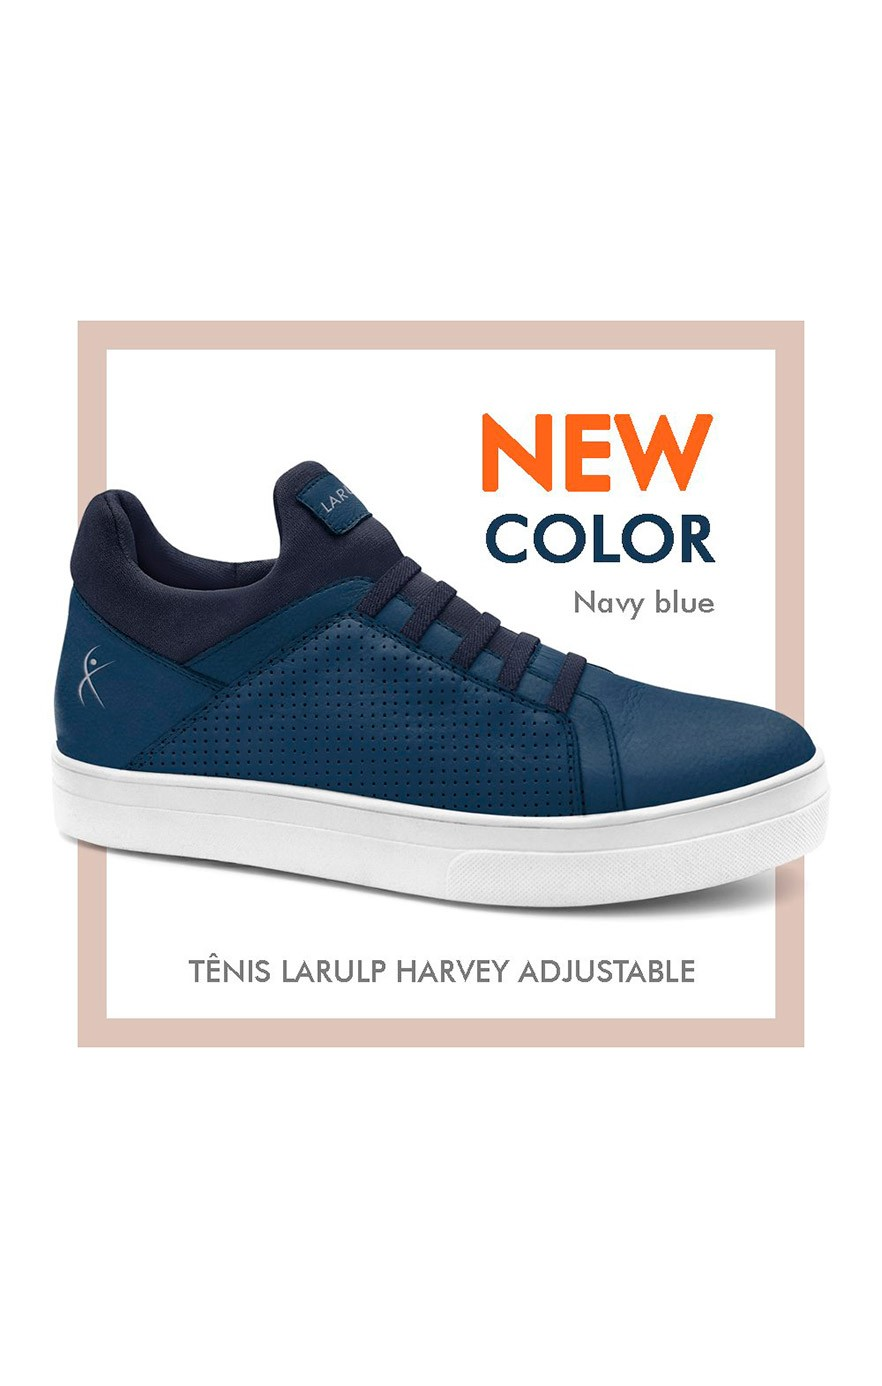 TENIS LARULP HARVEY ADJUSTABLE